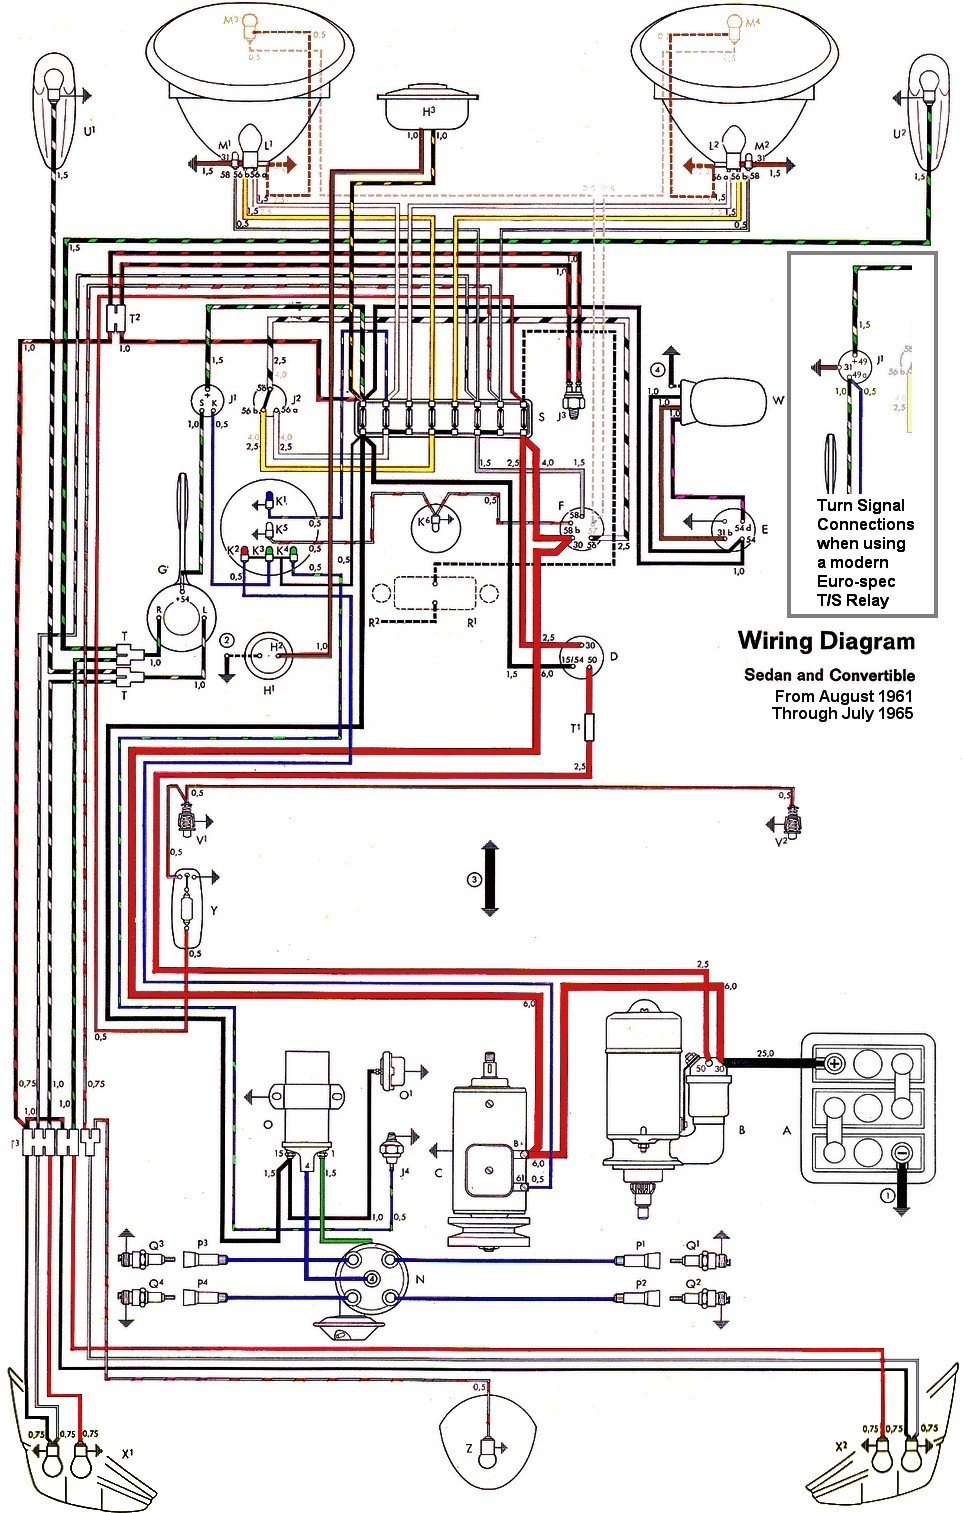 Vw Wiring Diagrams Diagram Will Be A Thing 1973 Camaro Air Conditioning Thesamba Com Type 1 Rh For Grounding 2003 Jetta